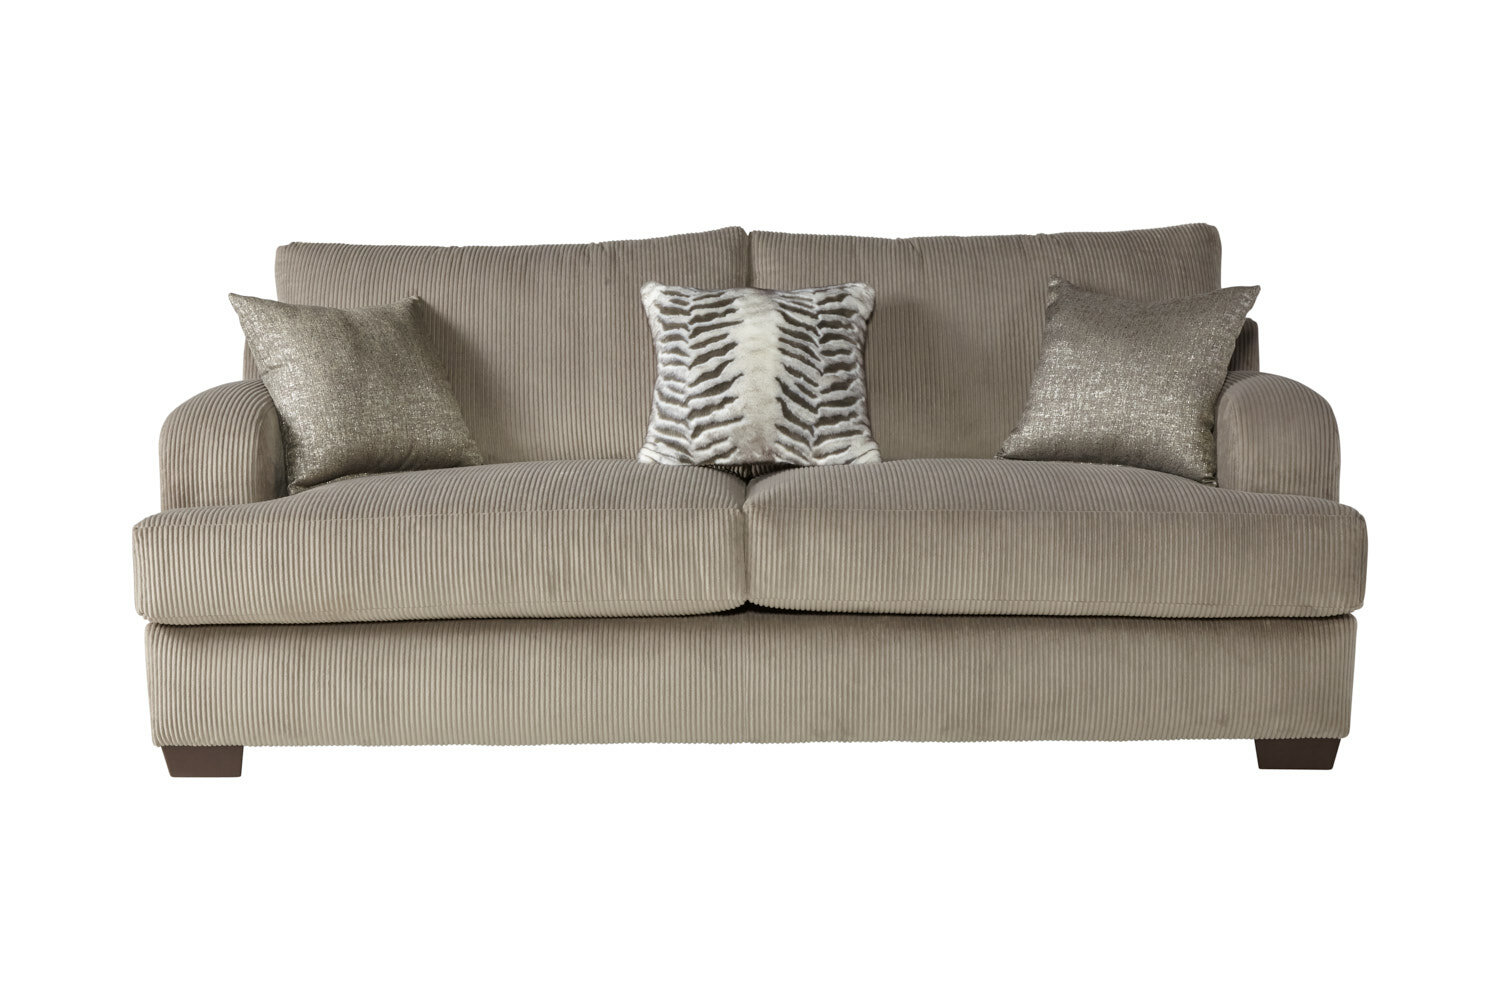 Alcott Hill Handler Sofa Reviews